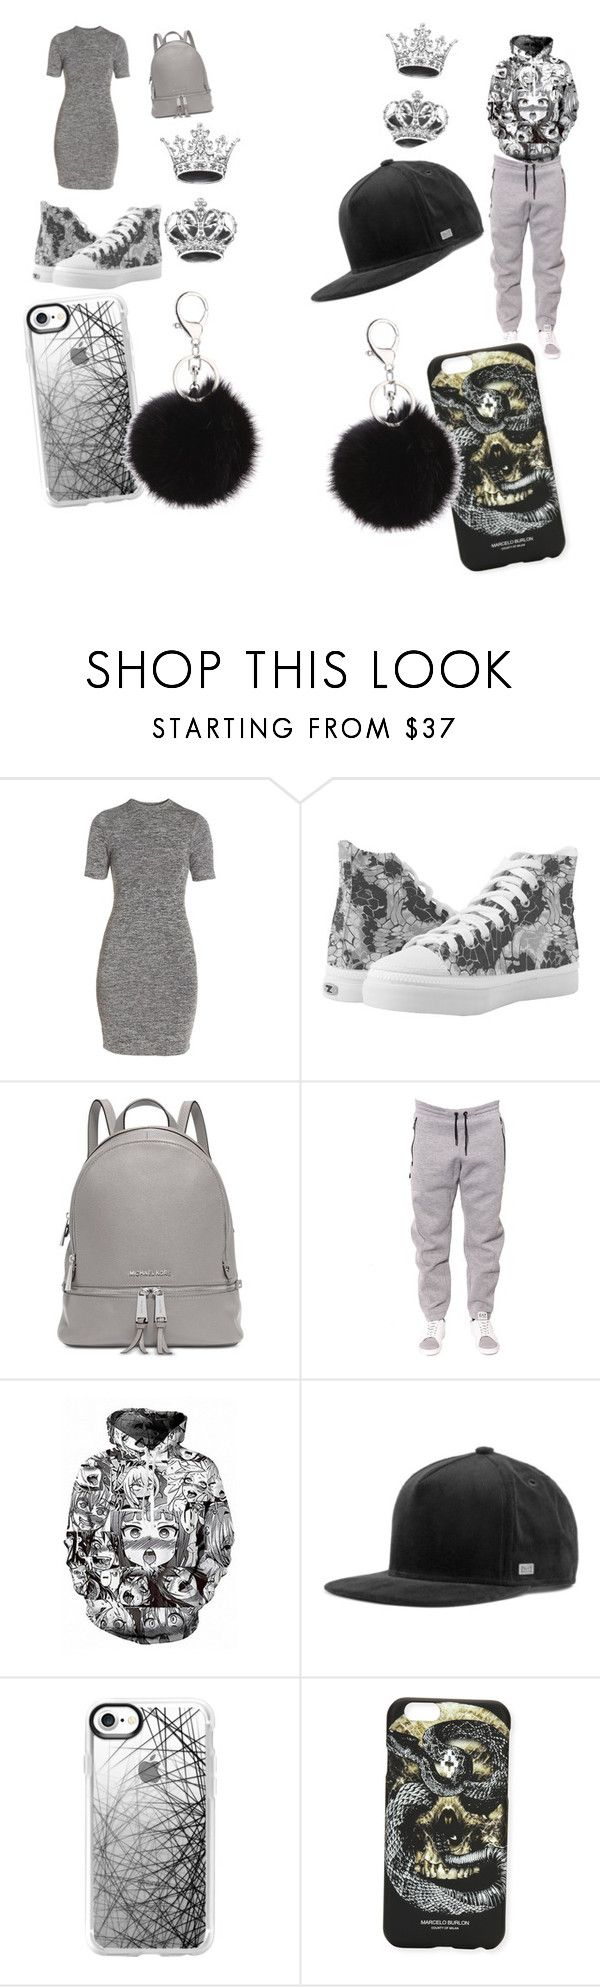 """""""ME ND MY BABY KENDALL'S FIRST DATE OUTFIT #GOALSS_ASF😍😘💖💍💎👑"""" by mekoo14 on Polyvore featuring French Connection, Michael Kors, EA7 Emporio Armani, WithChic, MELIN, Casetify and Marcelo Burlon"""